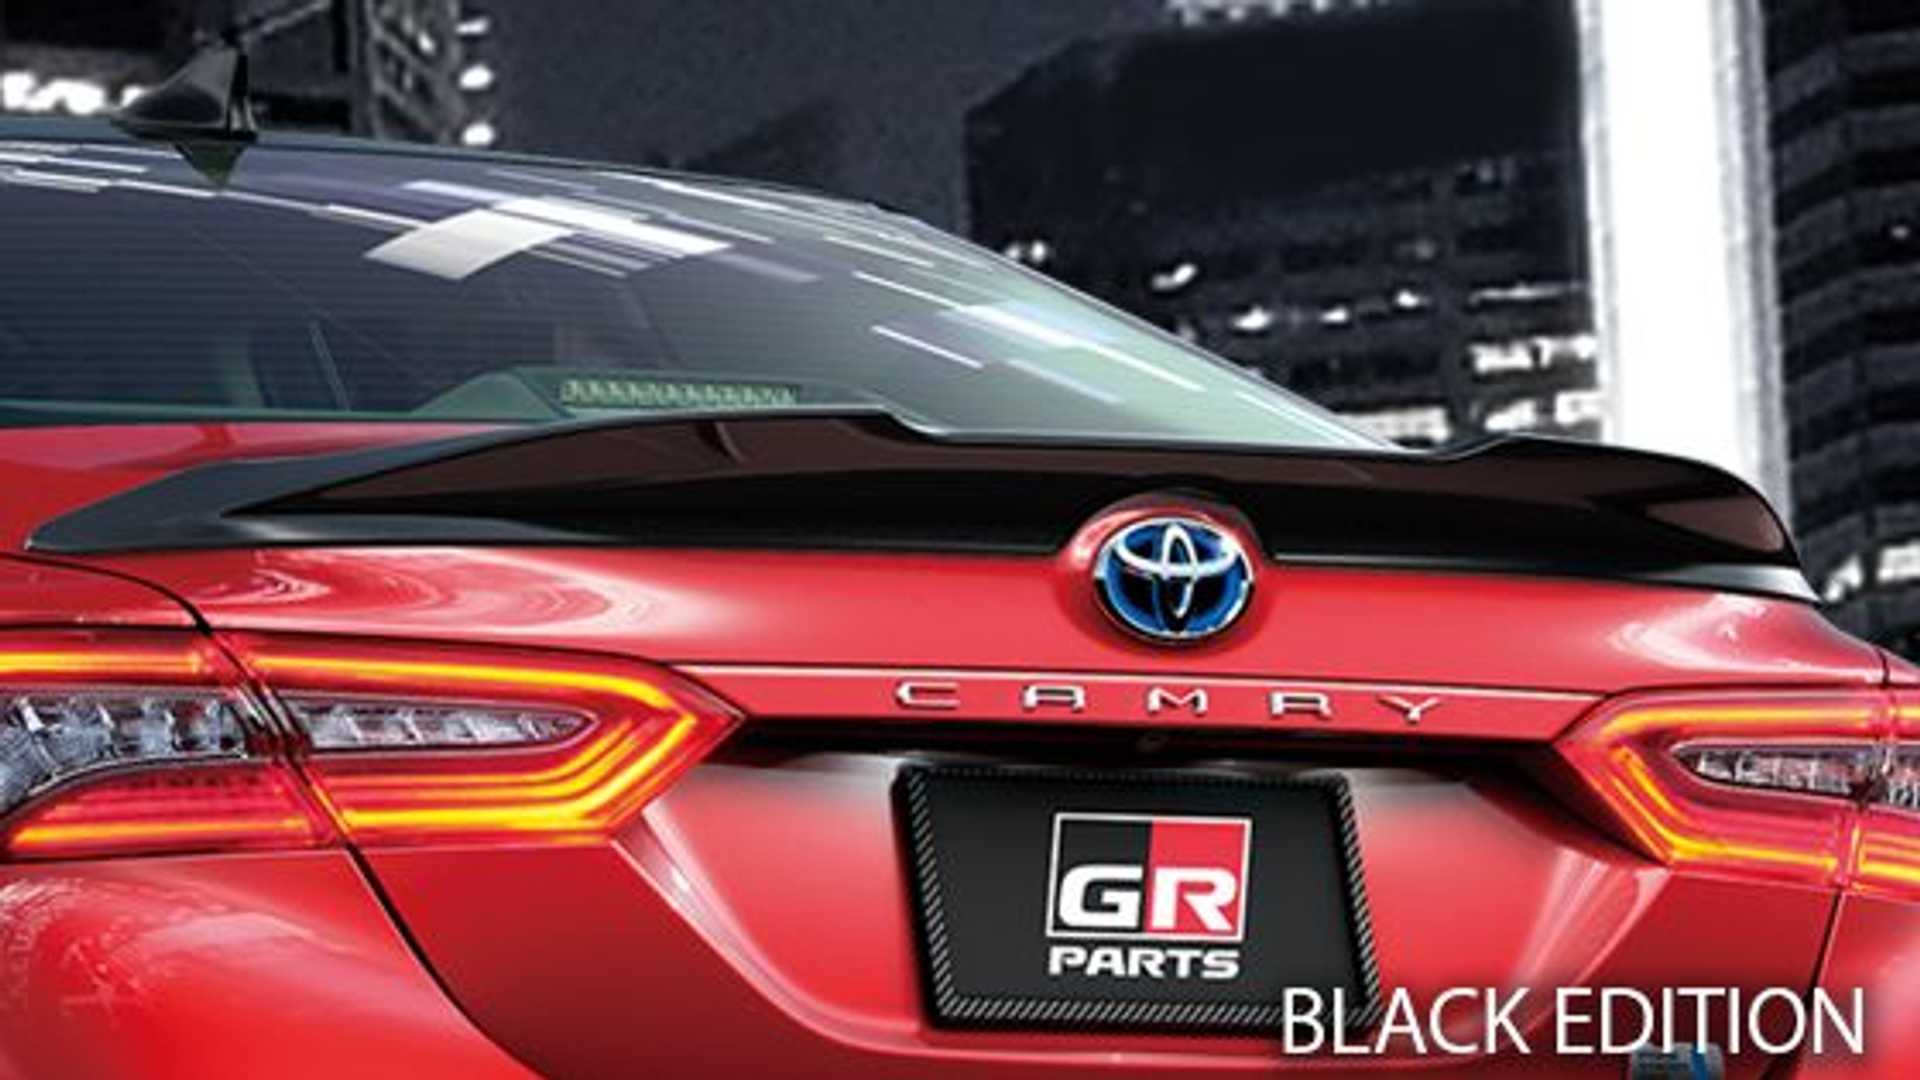 toyota-camry-gr-black-edition-rear-spoiler